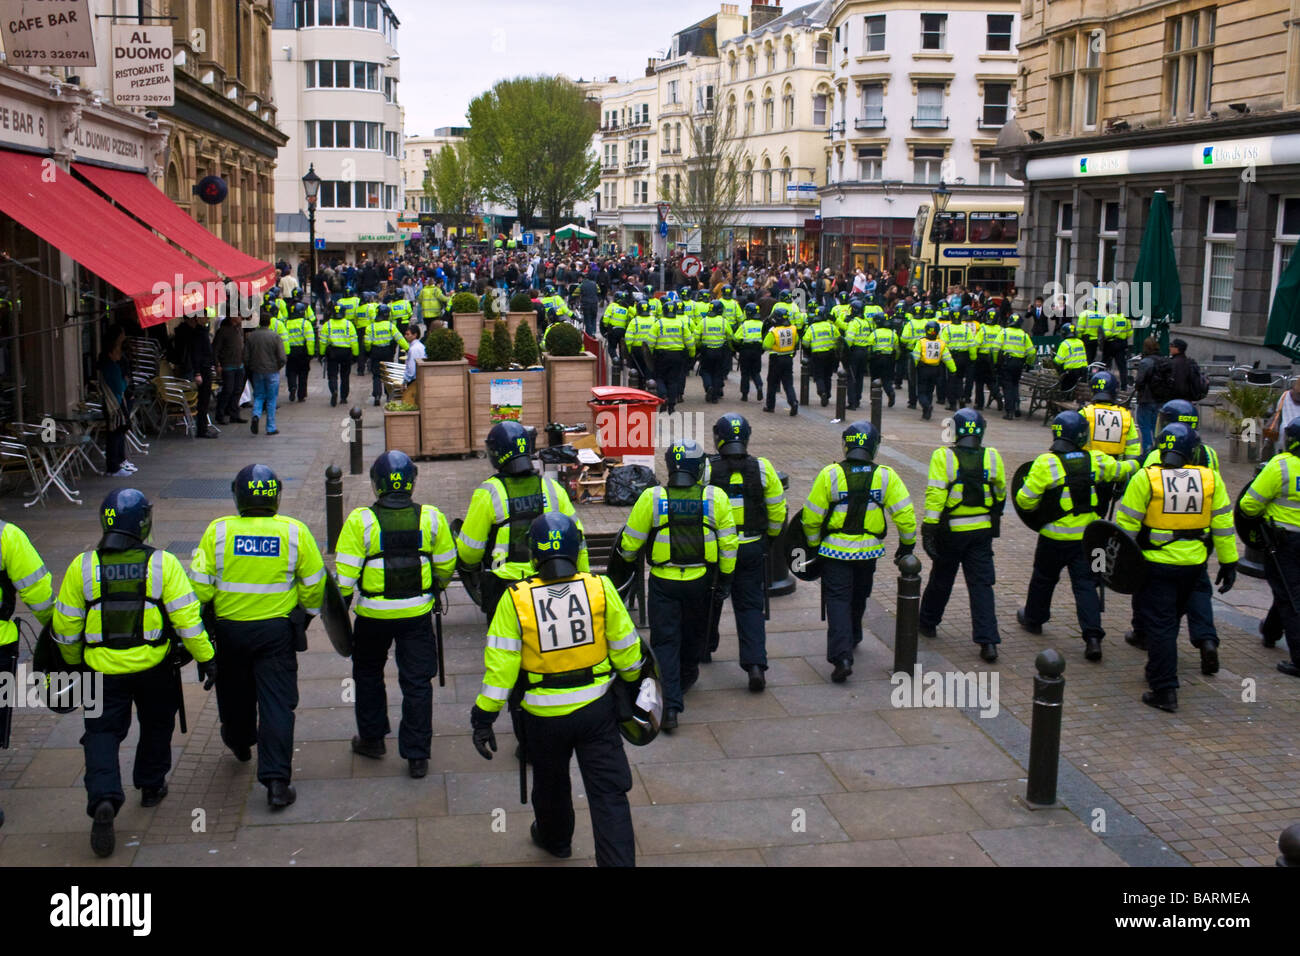 Lines of riot police contain crowds during may day protests in Brighton, Sussex, UK JPH0194 - Stock Image